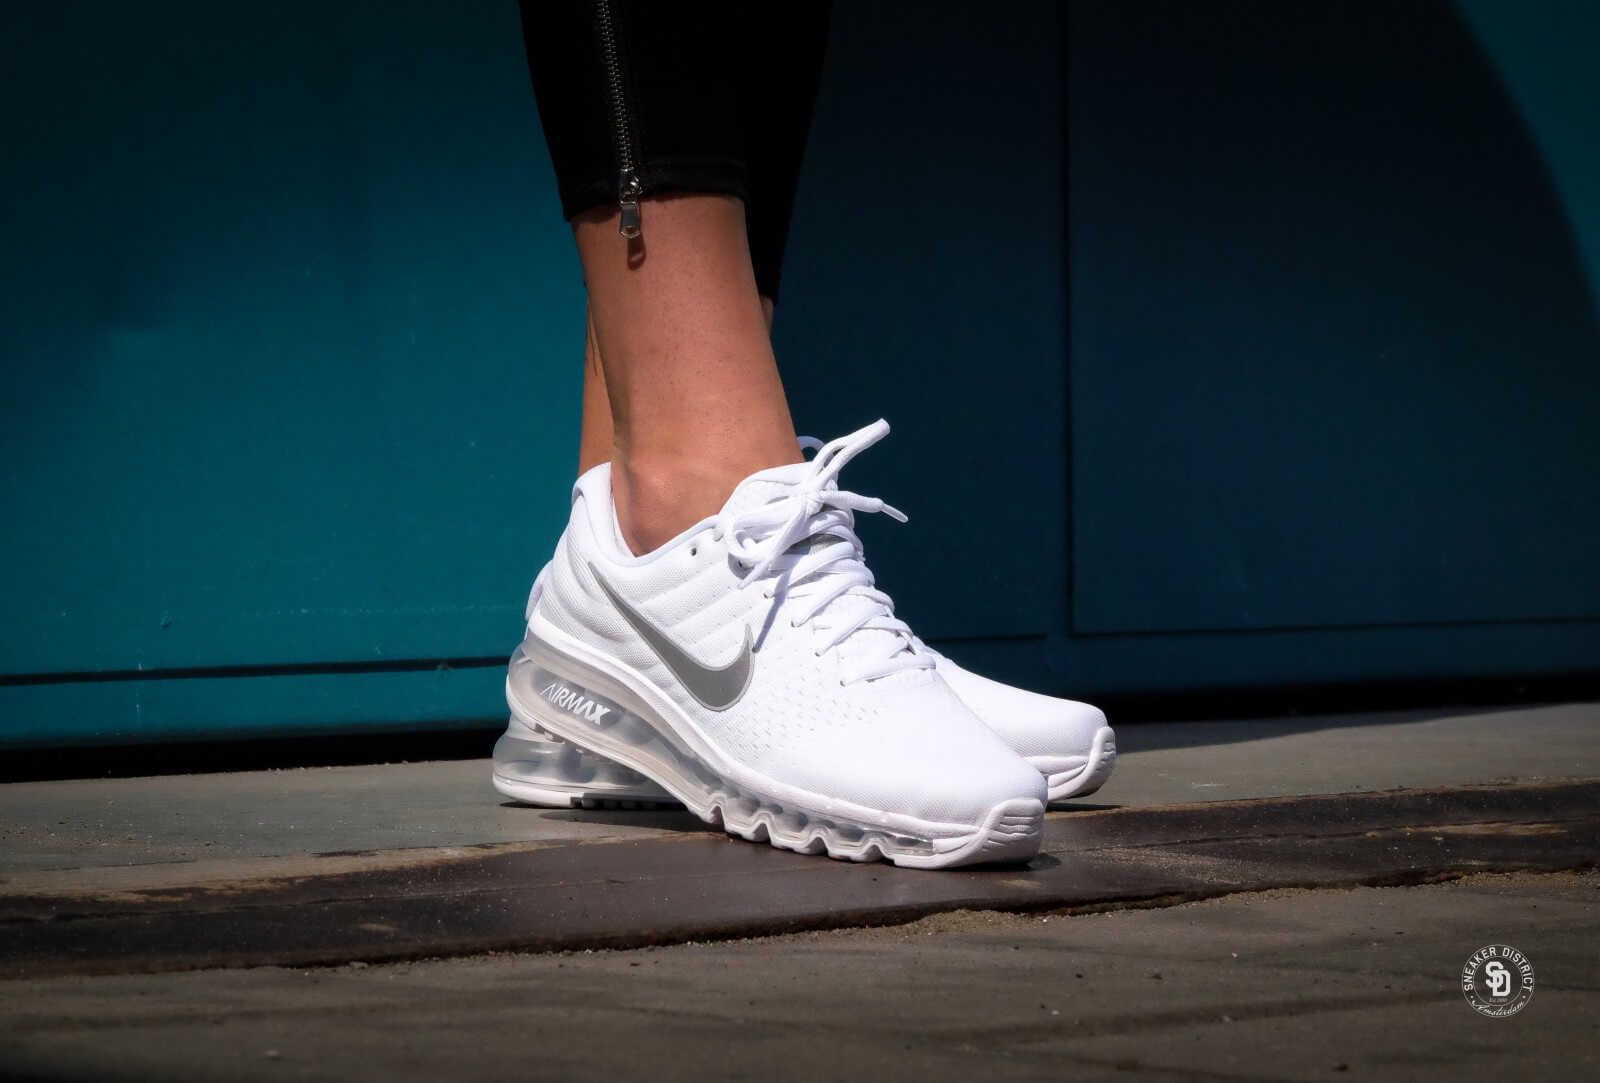 Nike Air Max 2017 (GS) White/Metallic Silver